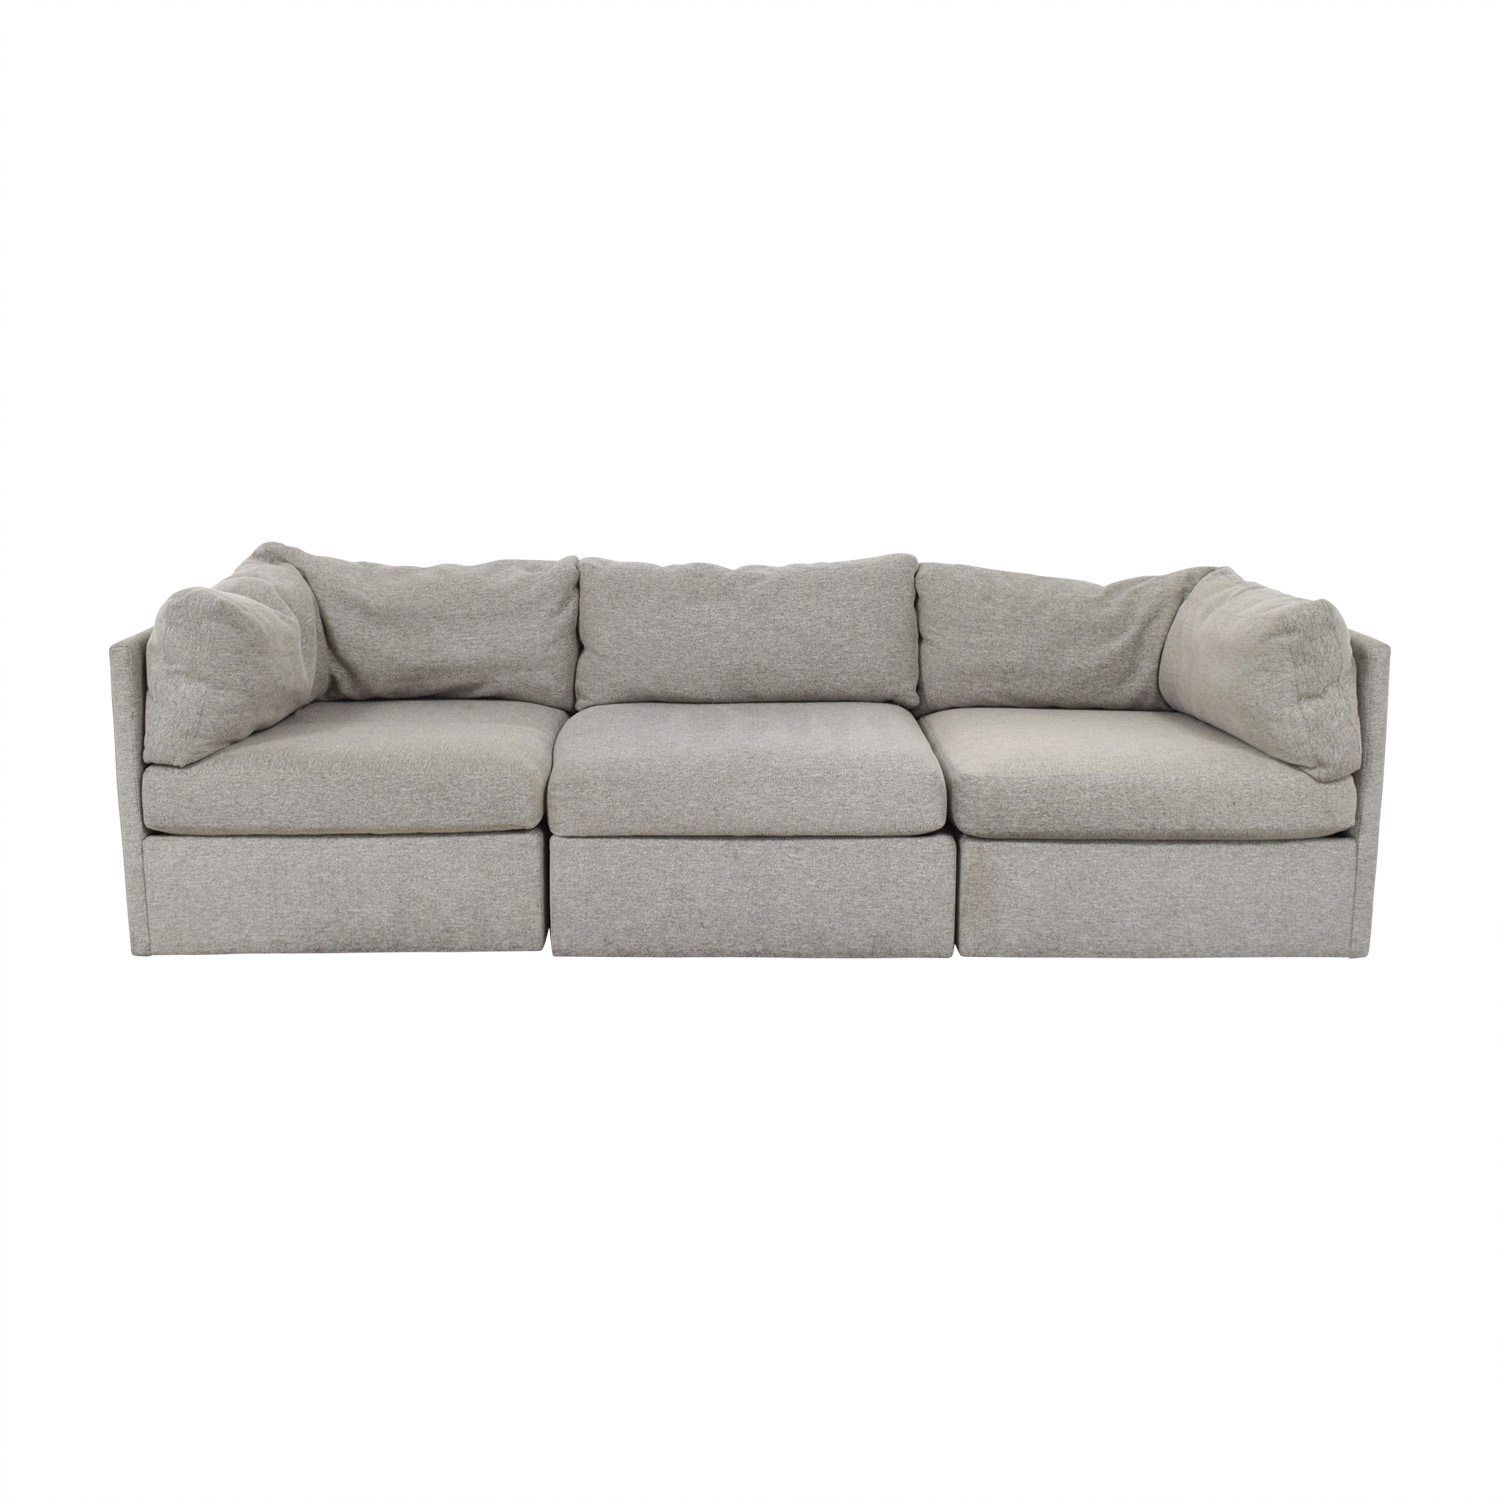 70 Off Chateau D Ax Chateau D Ax Leather Sectional With